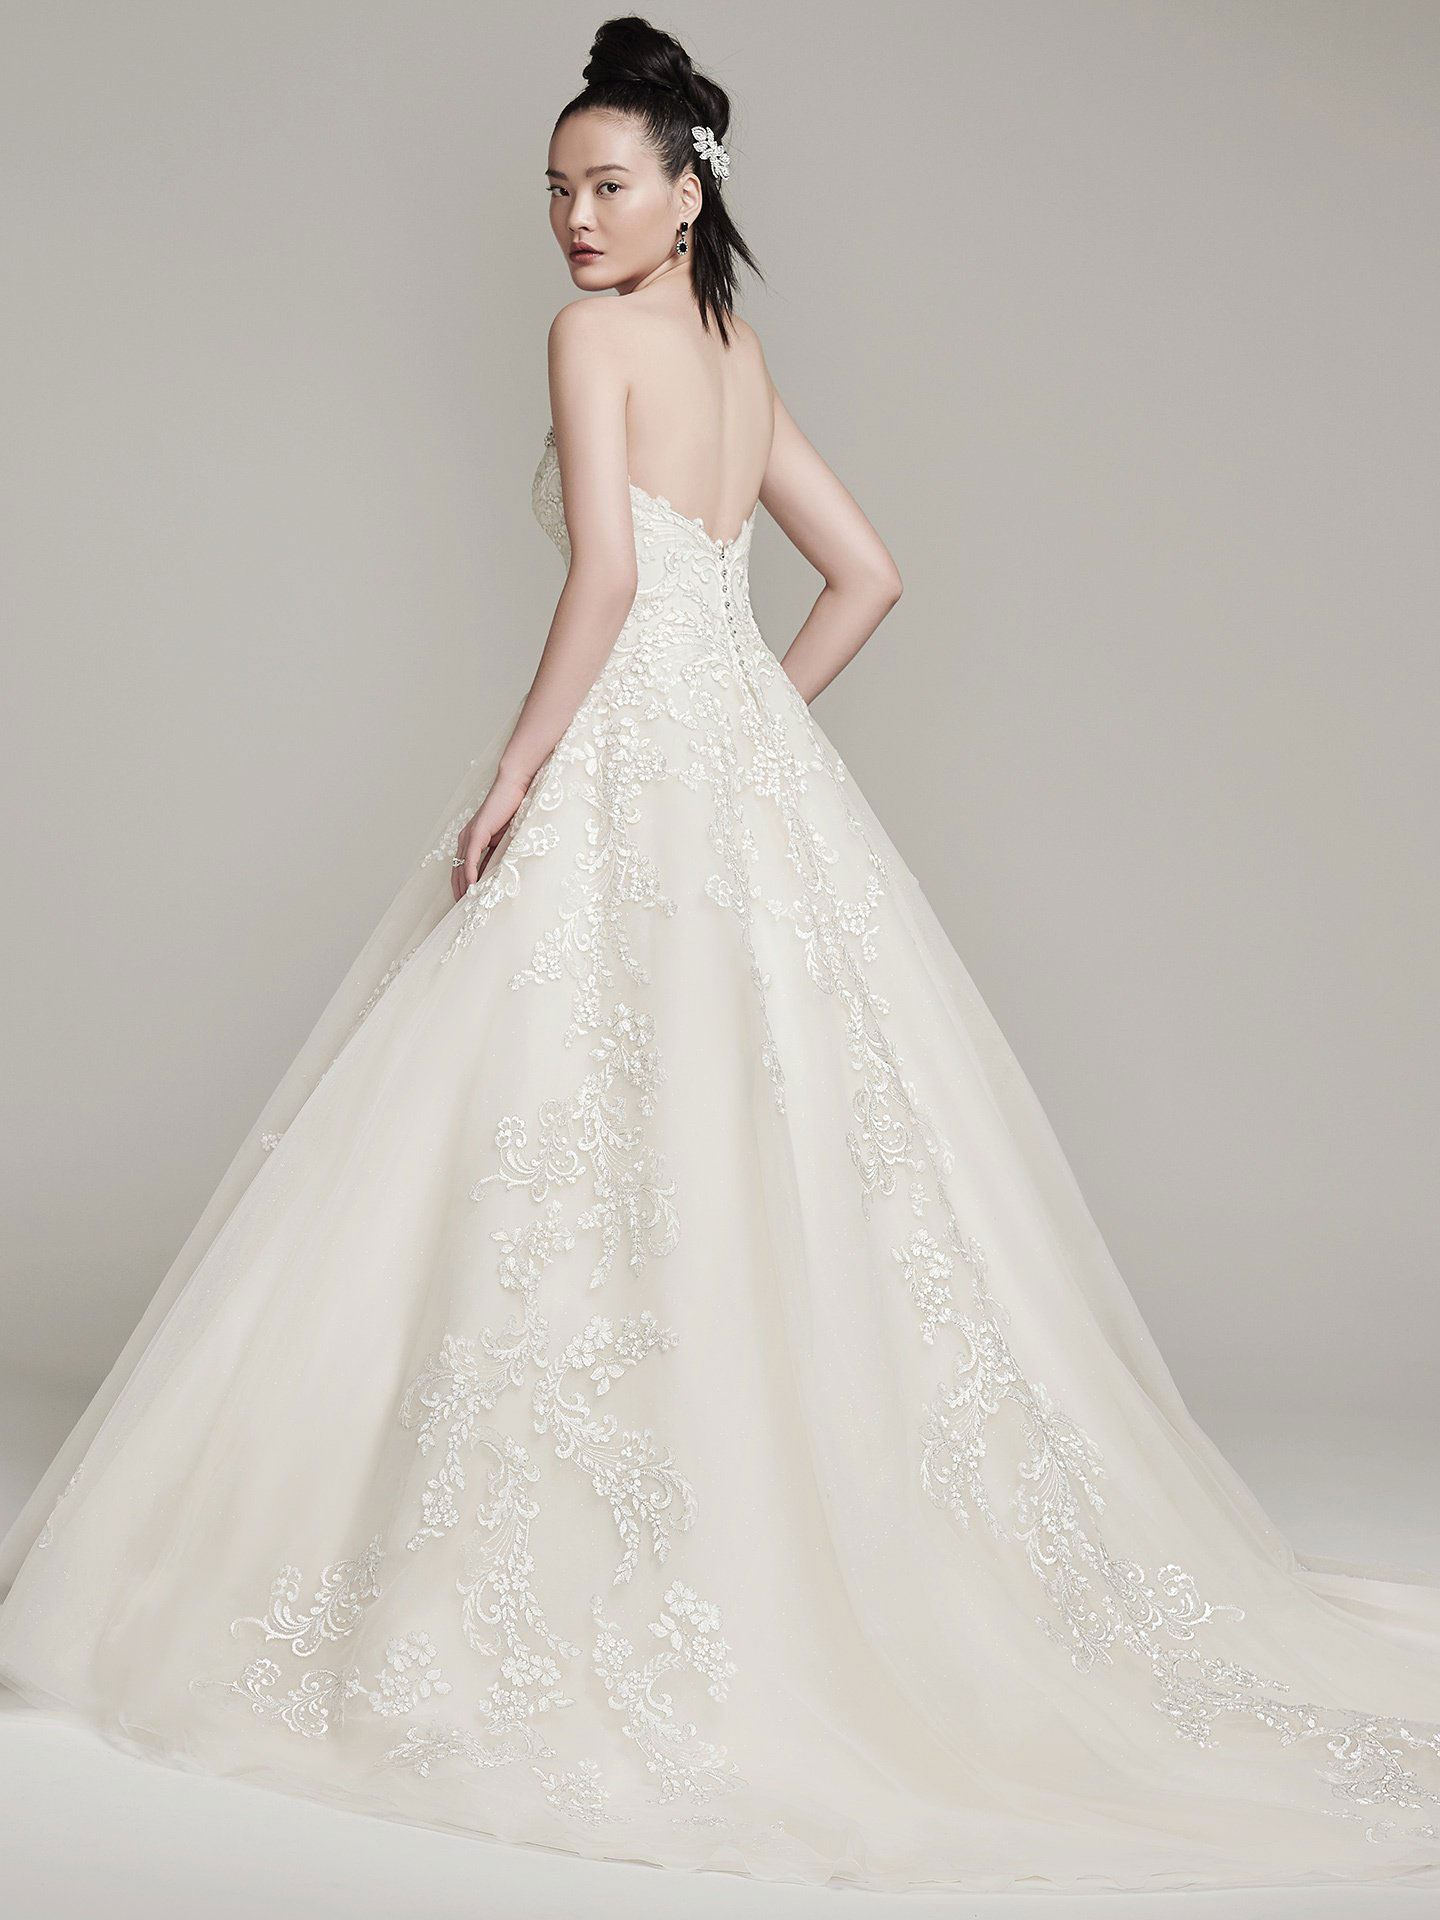 Sottero &#038; Midgley <br> Olga <br> Size 14 Was £1,580 Now £900